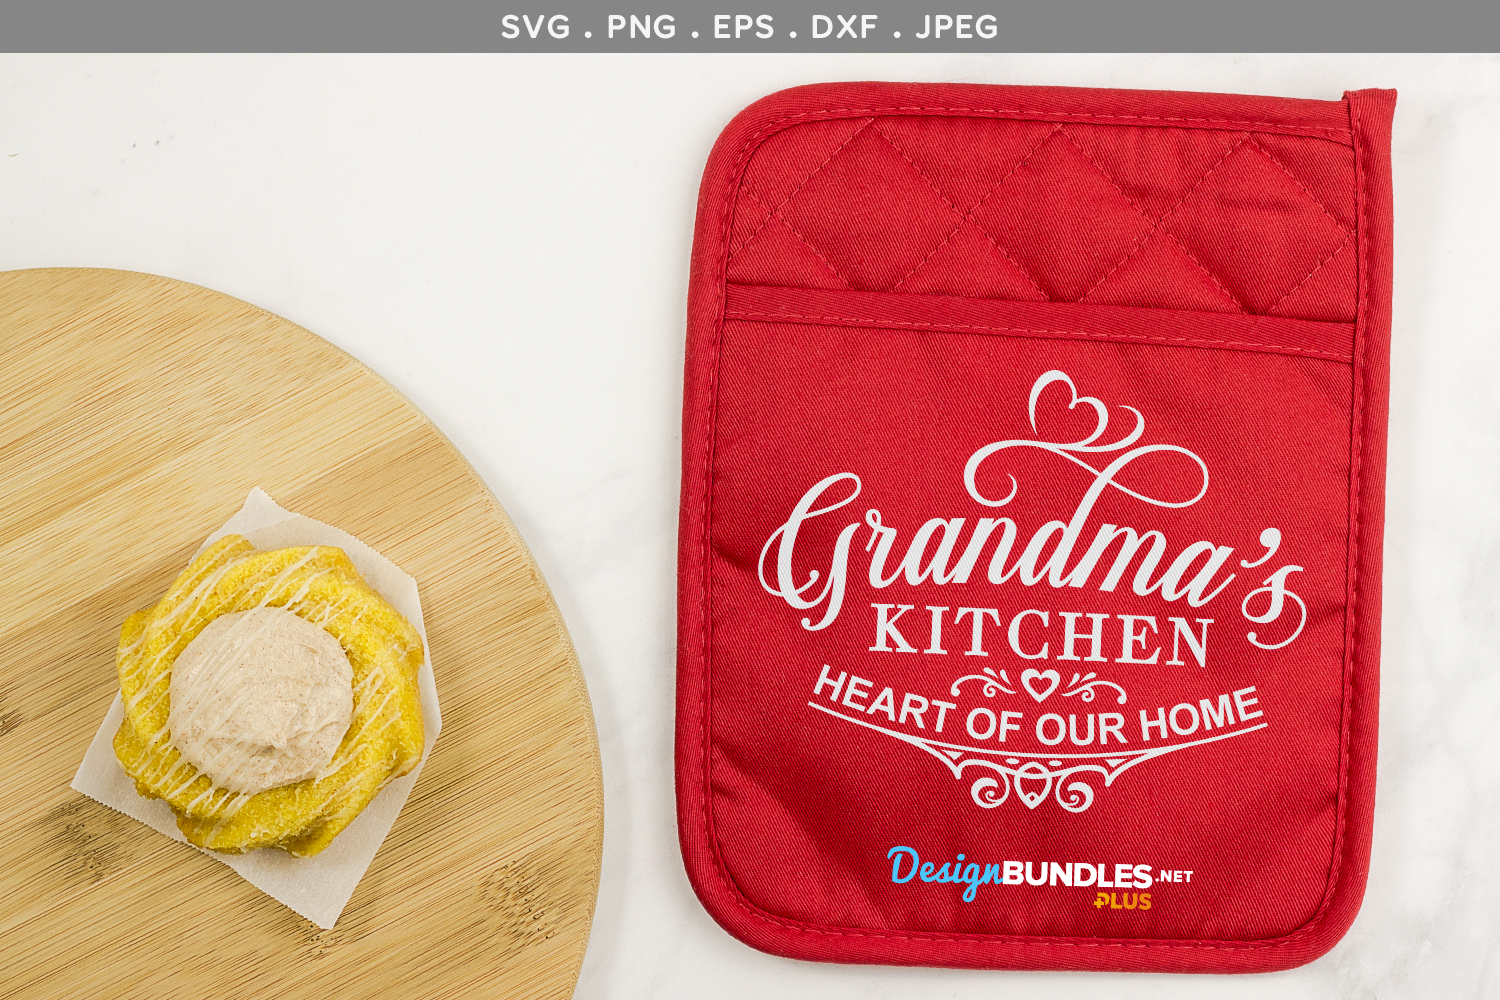 Grandma's Kitchen, Heart of our home - svg cut files example image 1